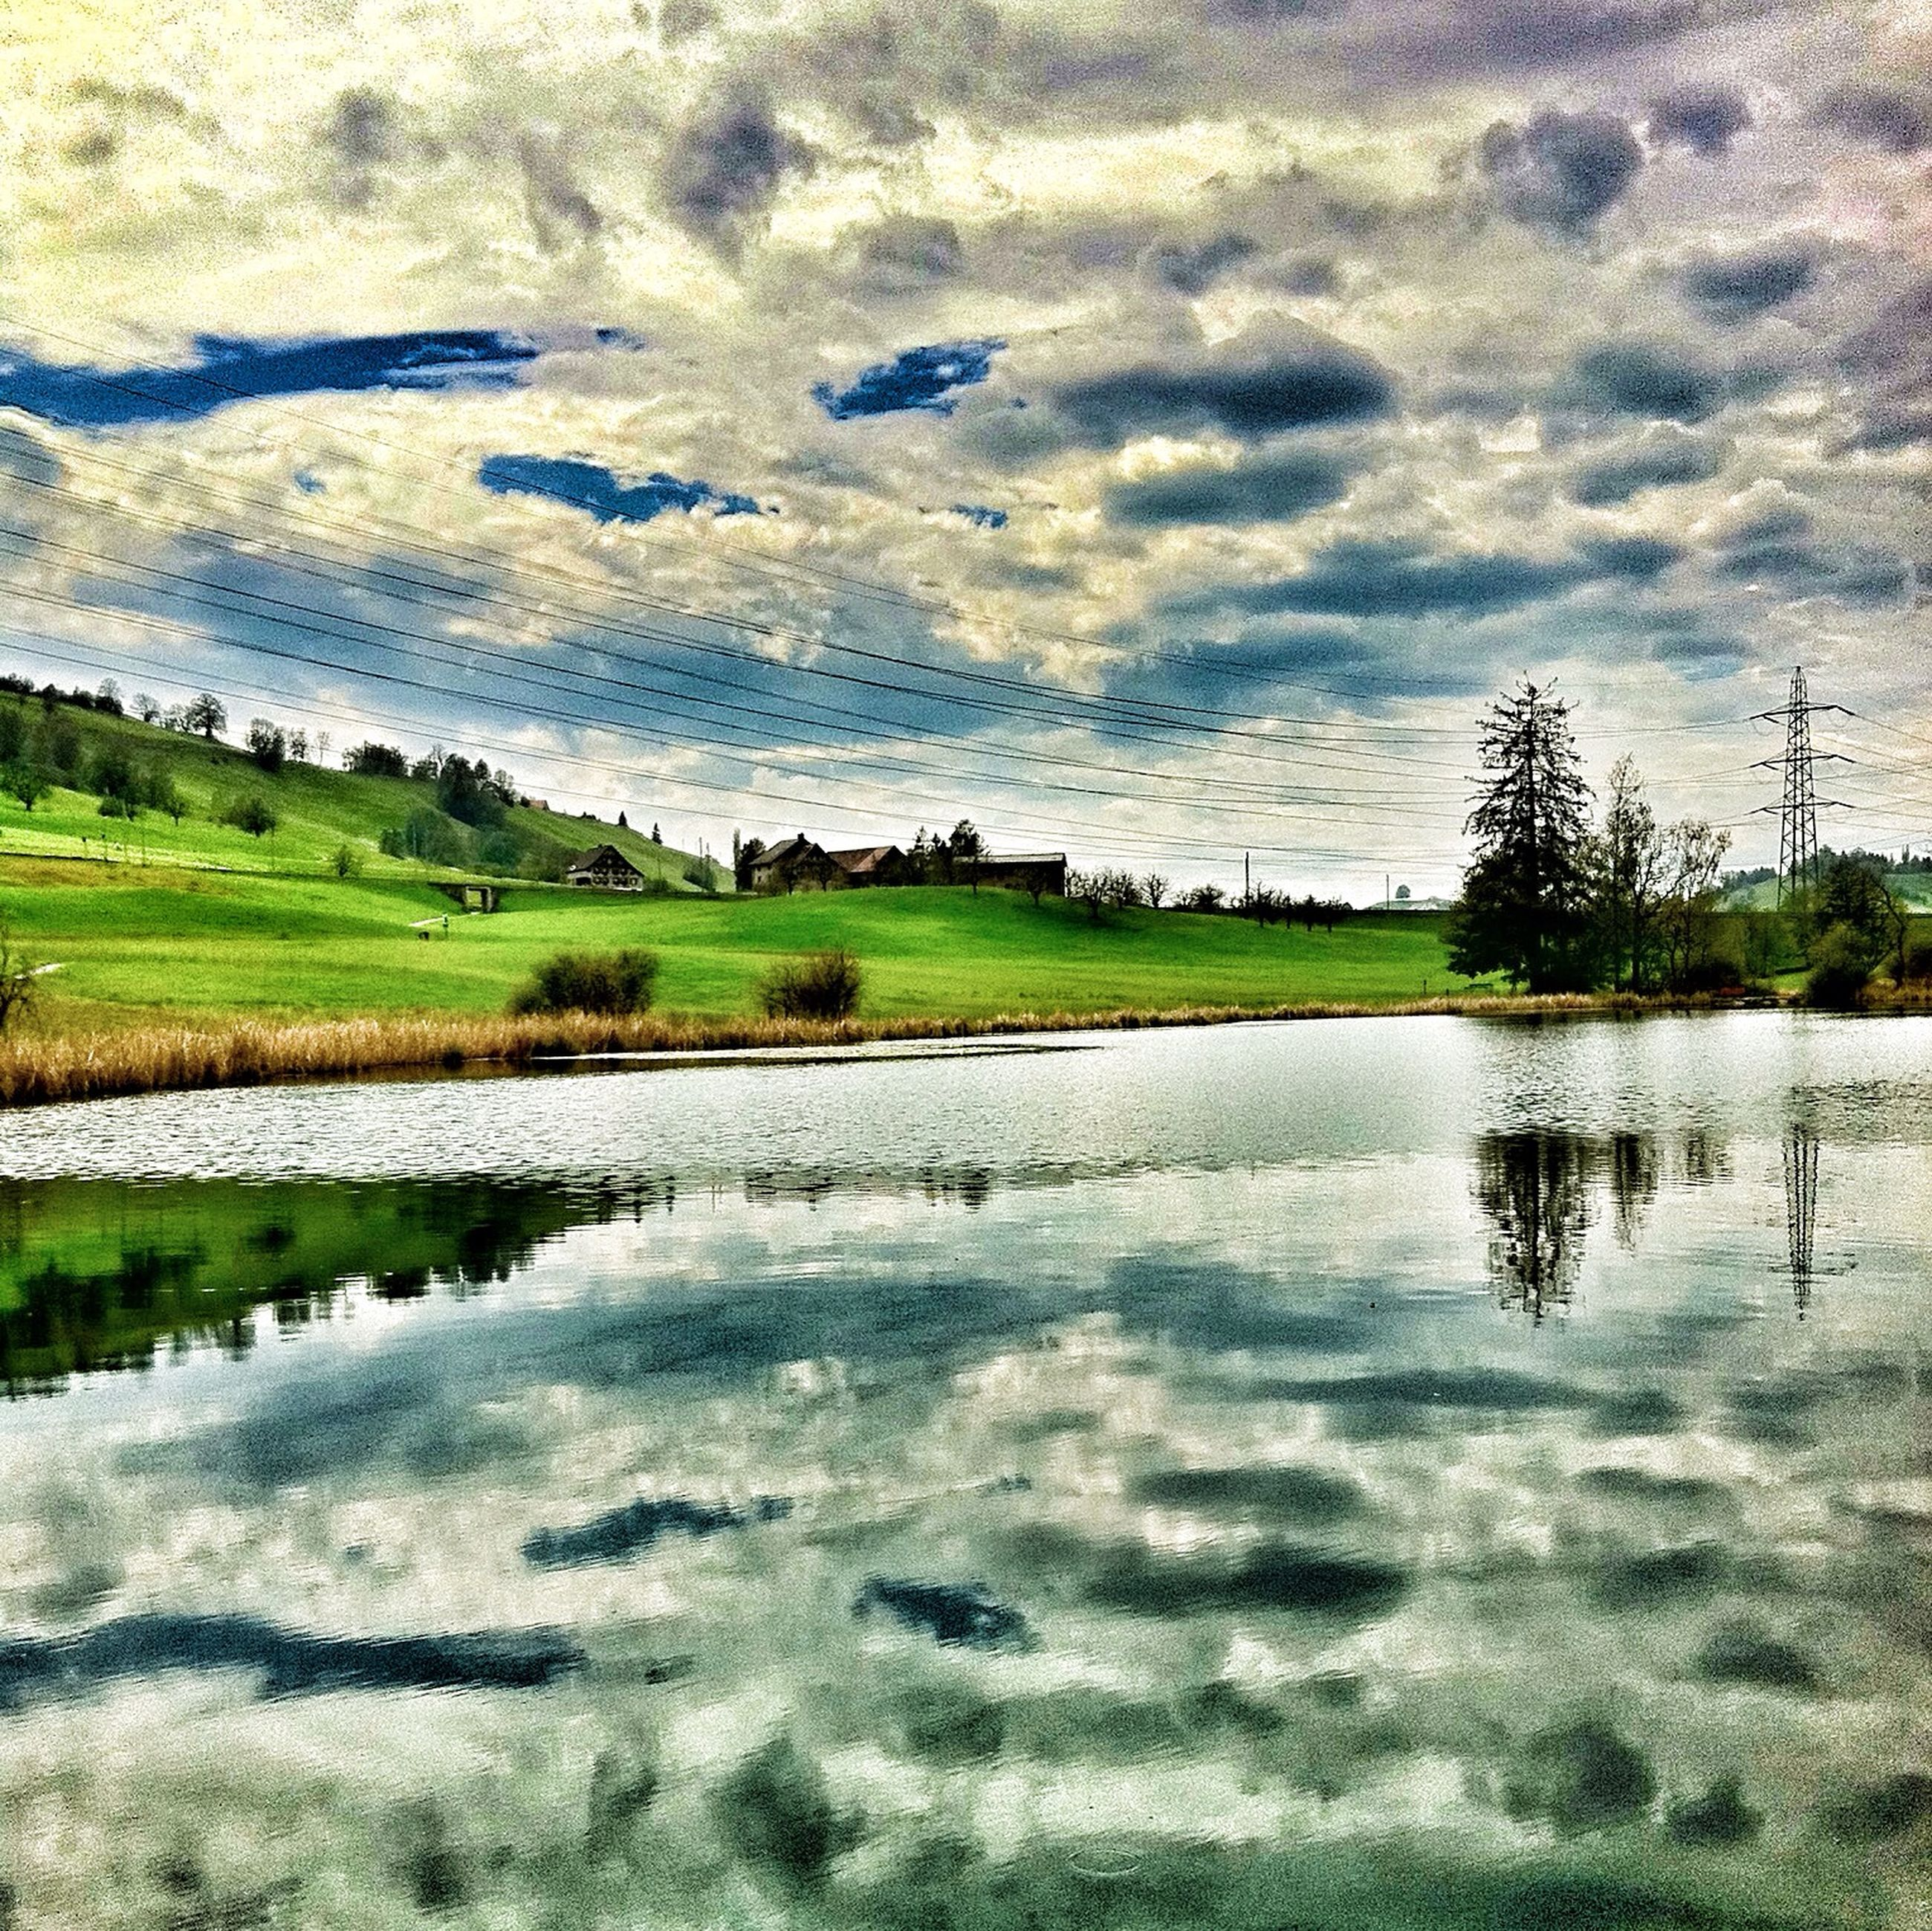 tranquil scene, tranquility, water, sky, scenics, landscape, cloud - sky, beauty in nature, nature, lake, grass, field, reflection, cloudy, tree, cloud, idyllic, river, outdoors, non-urban scene